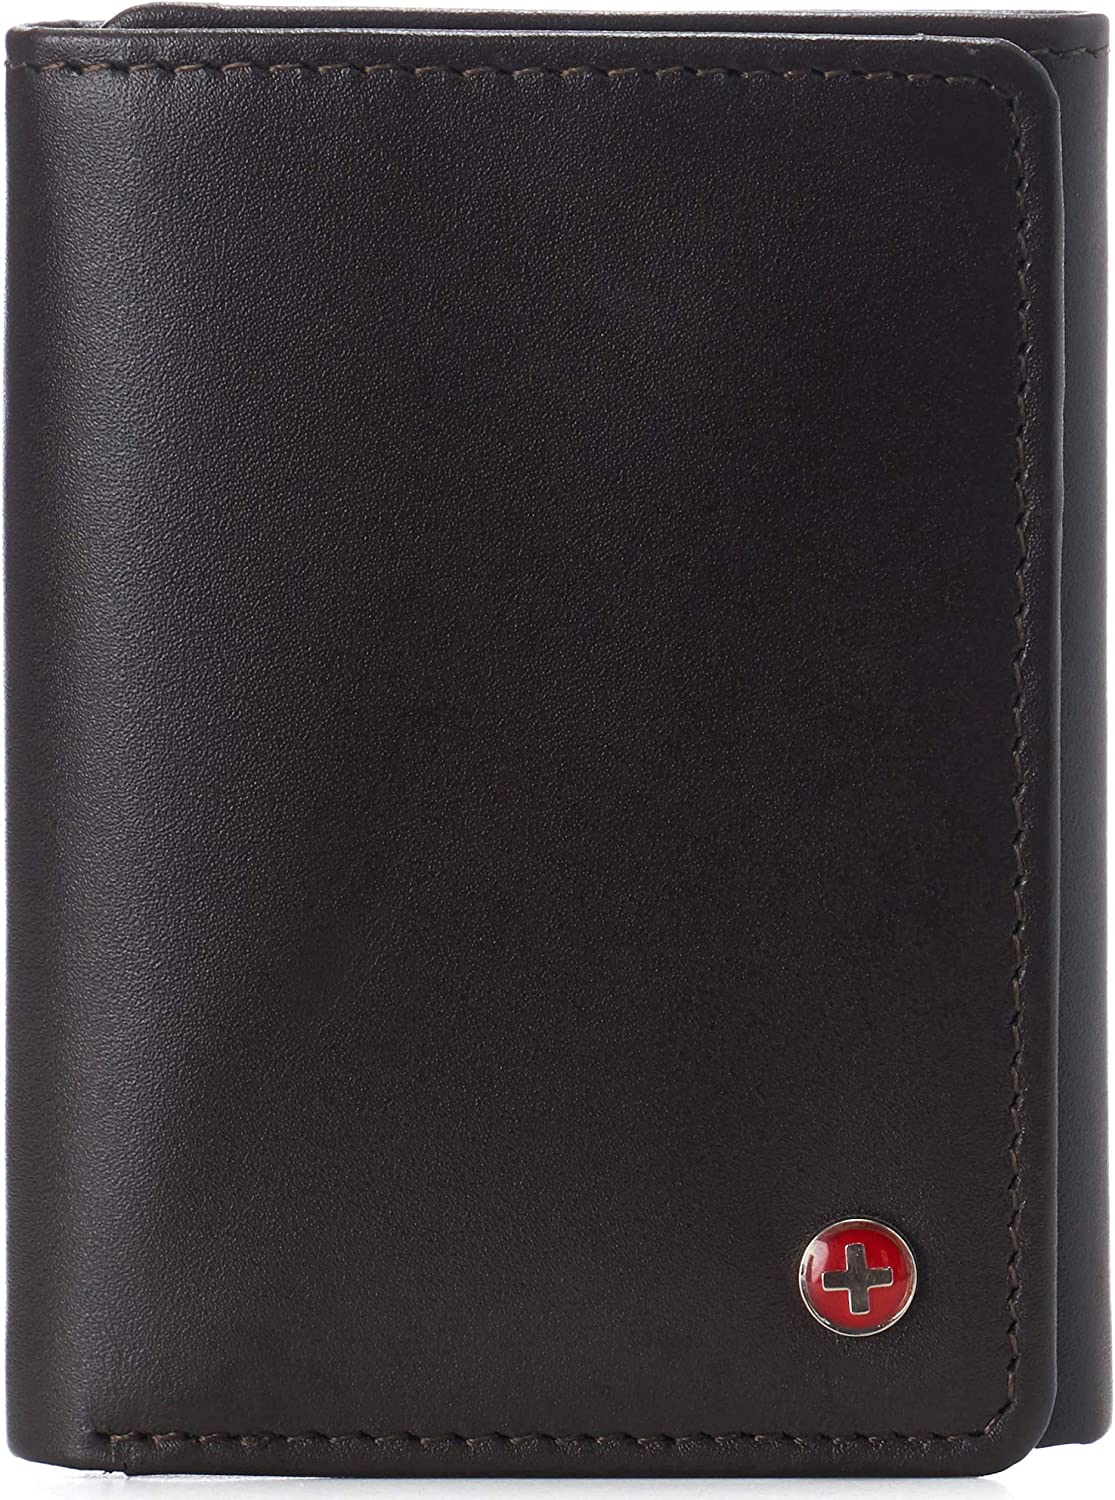 Alpine Swiss Mens Leon Trifold Wallet RFID Safe Comes in a Gift Box